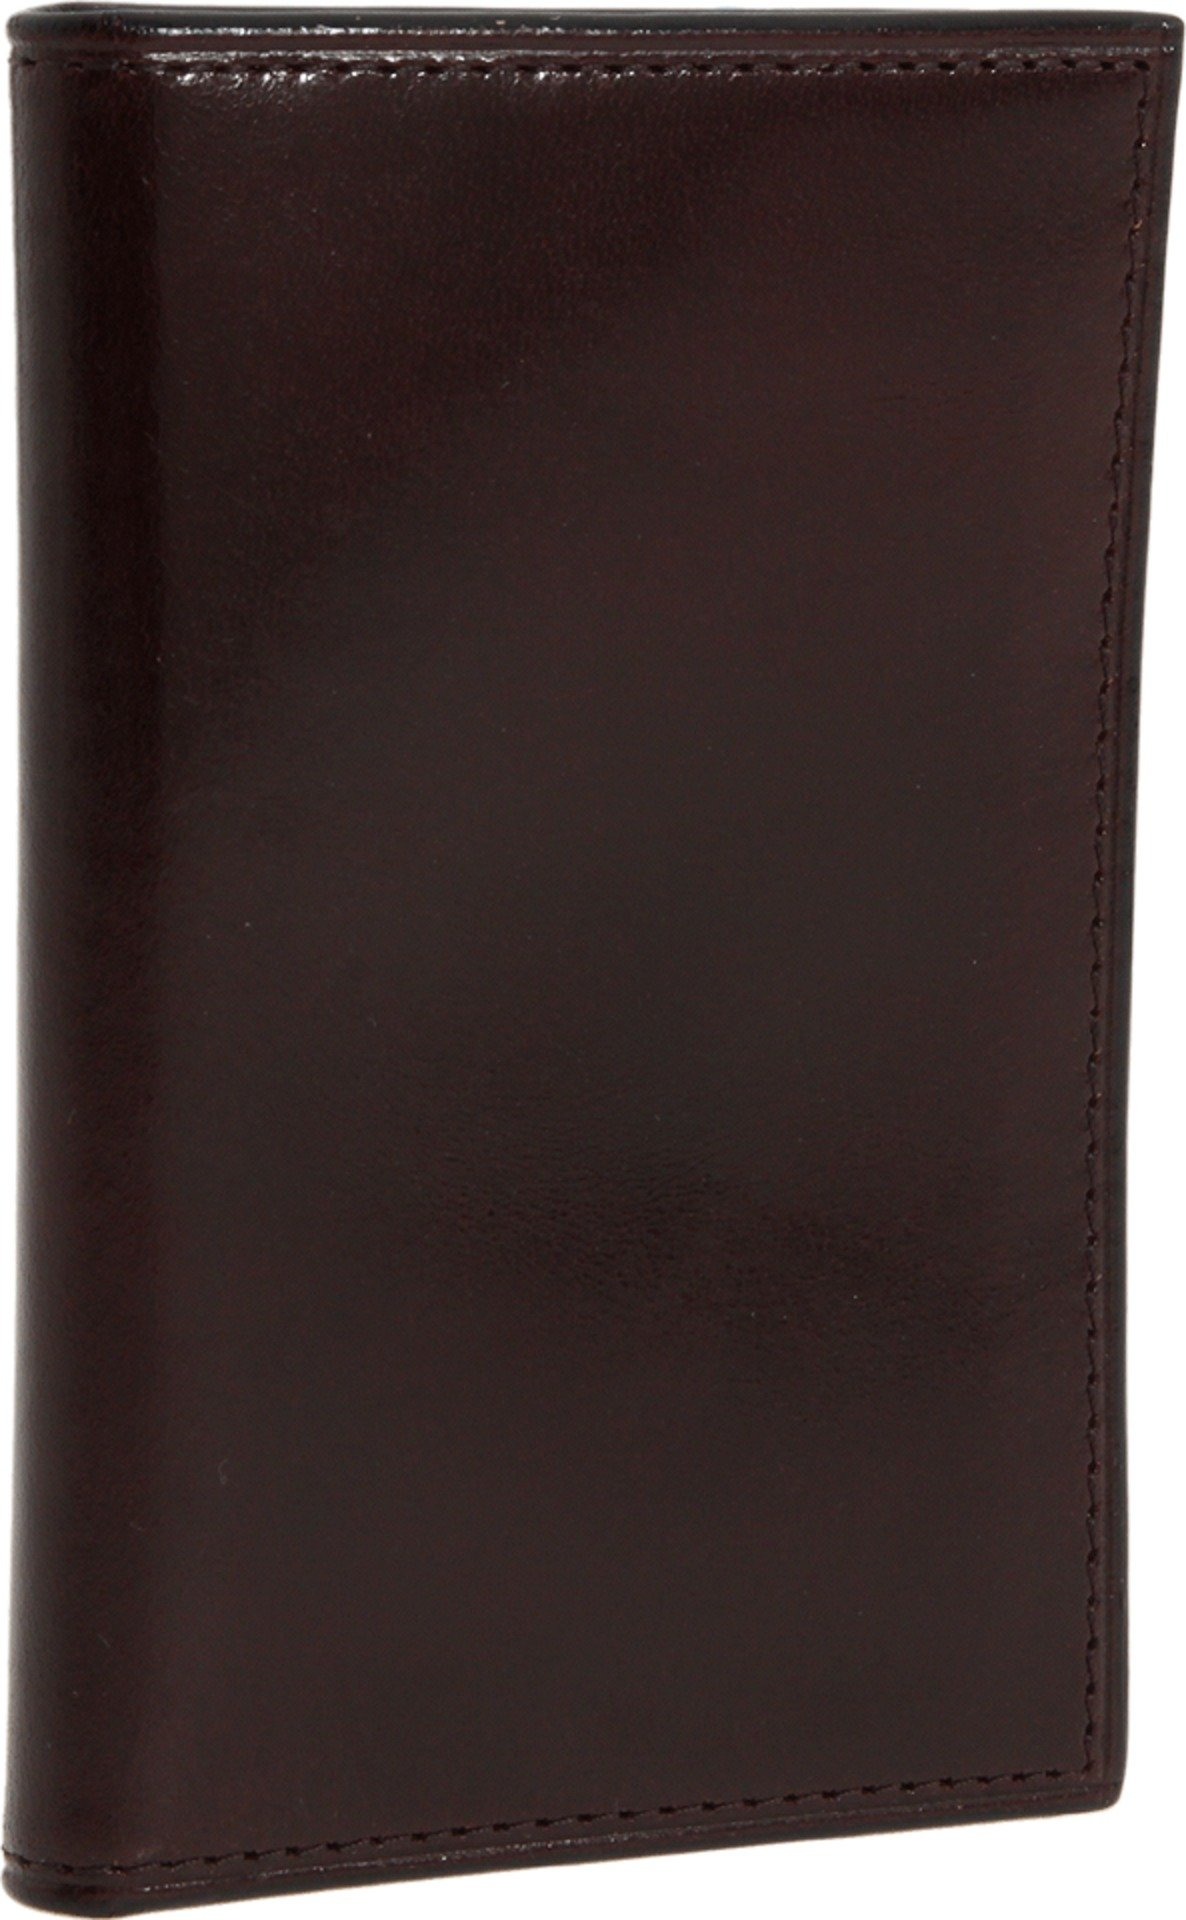 Bosca Men's Old Leather Collection - 8 Pocket Credit Card Case Dark Brown Leather One Size by Bosca